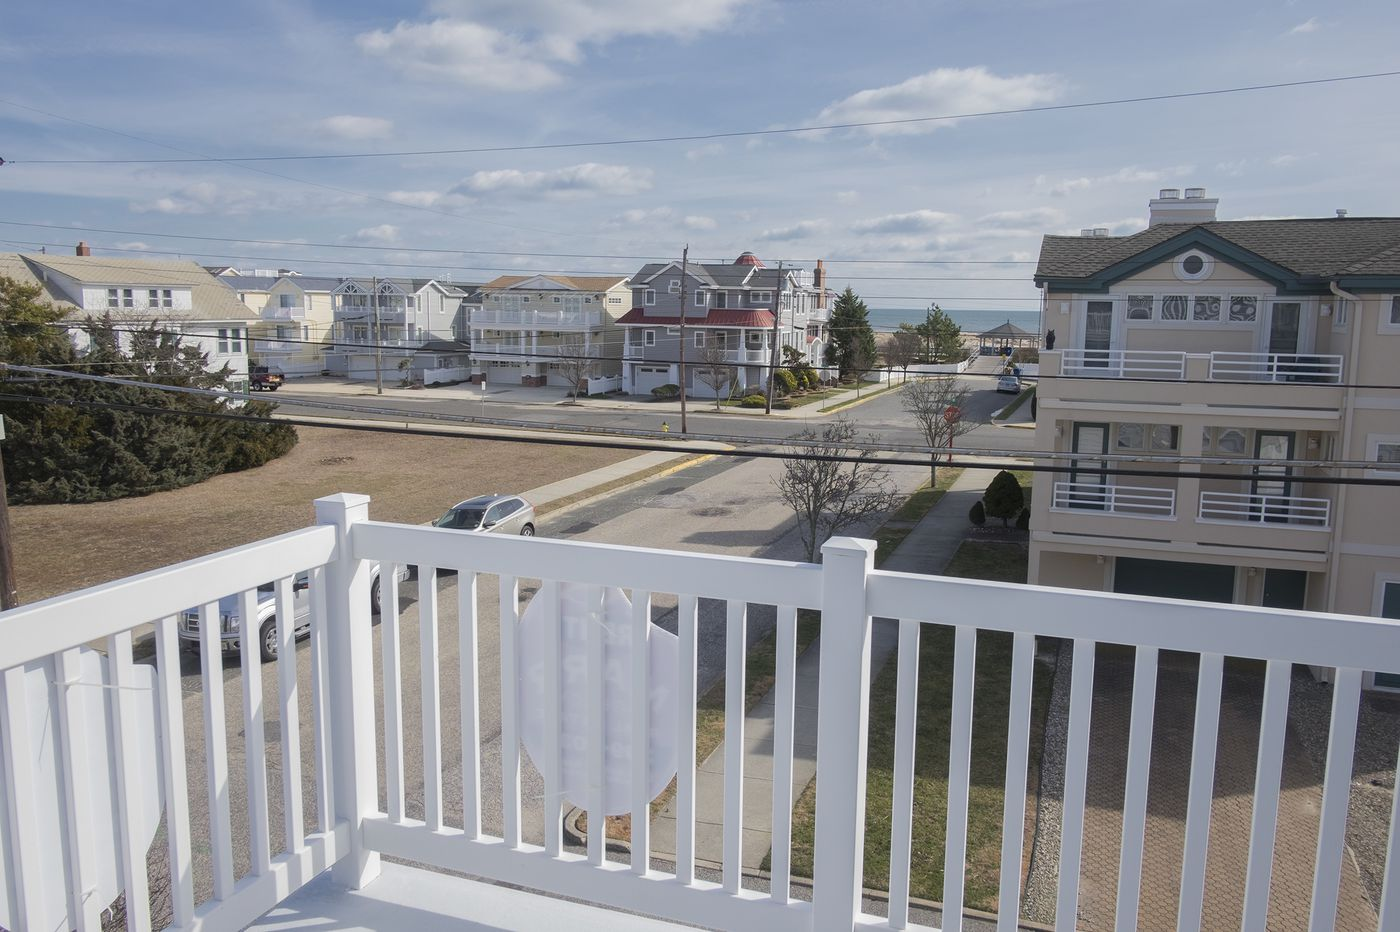 New 'Airbnb tax' may affect Shore rentals